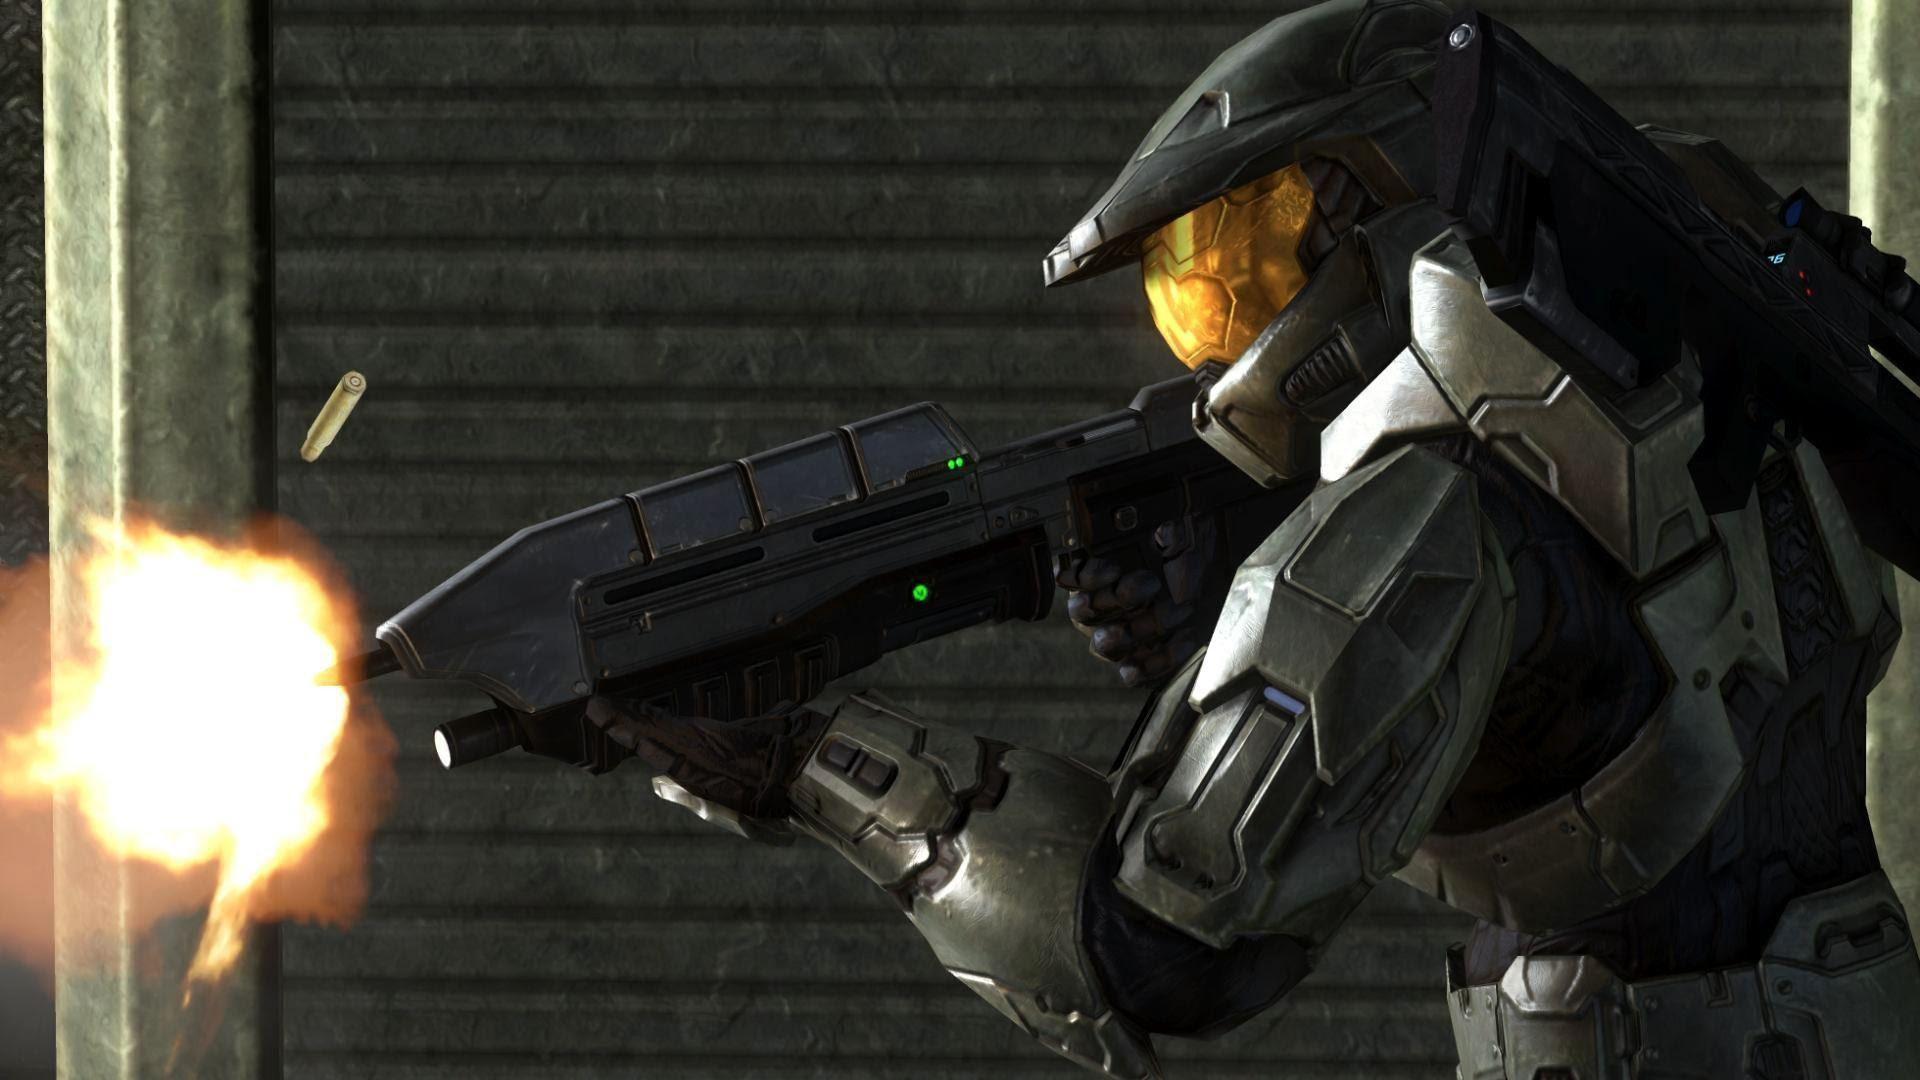 Halo 3 Master Chief And Arbiter Wallpaper Pc Halo 3 Master Chief